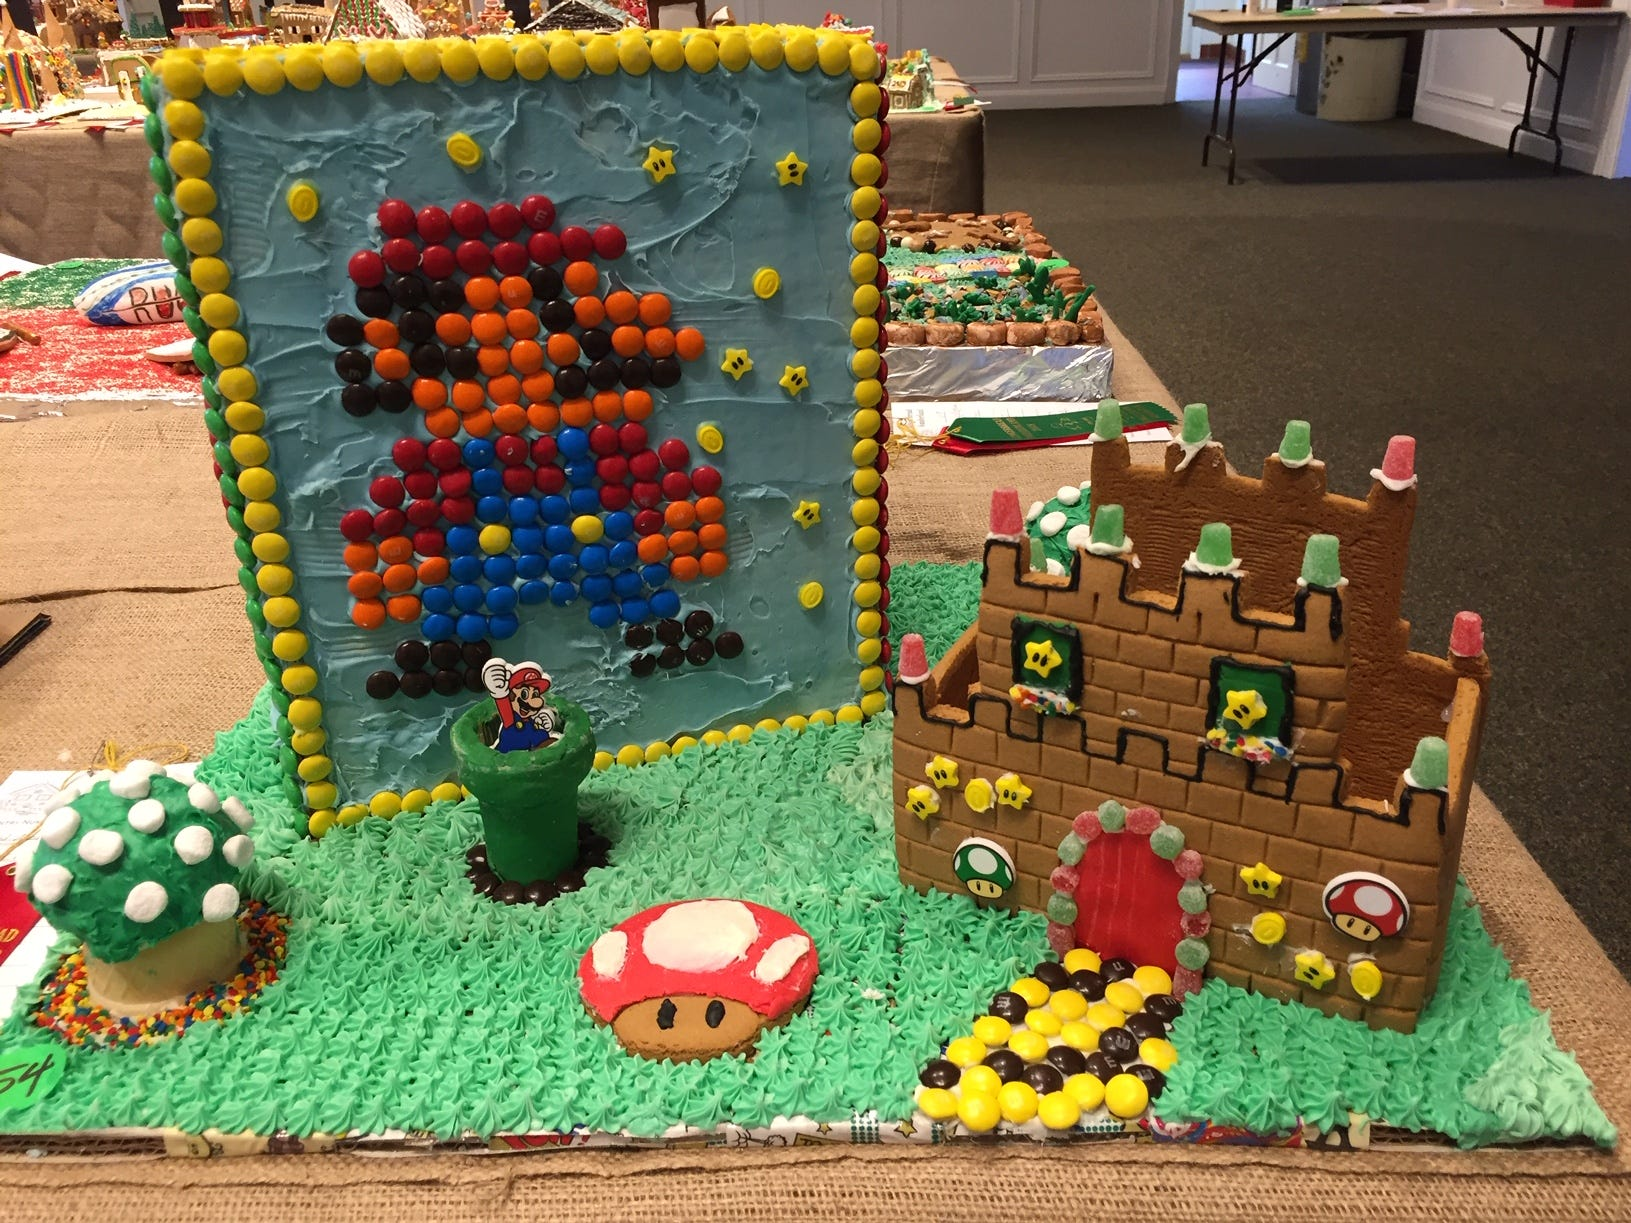 """Mario Time!"" by Joey, 9,  and Anna Stallari, 7, of Denville, at the 2018 Gingerbread Wonderland at the Frelinghuysen Arboretum. Child category."